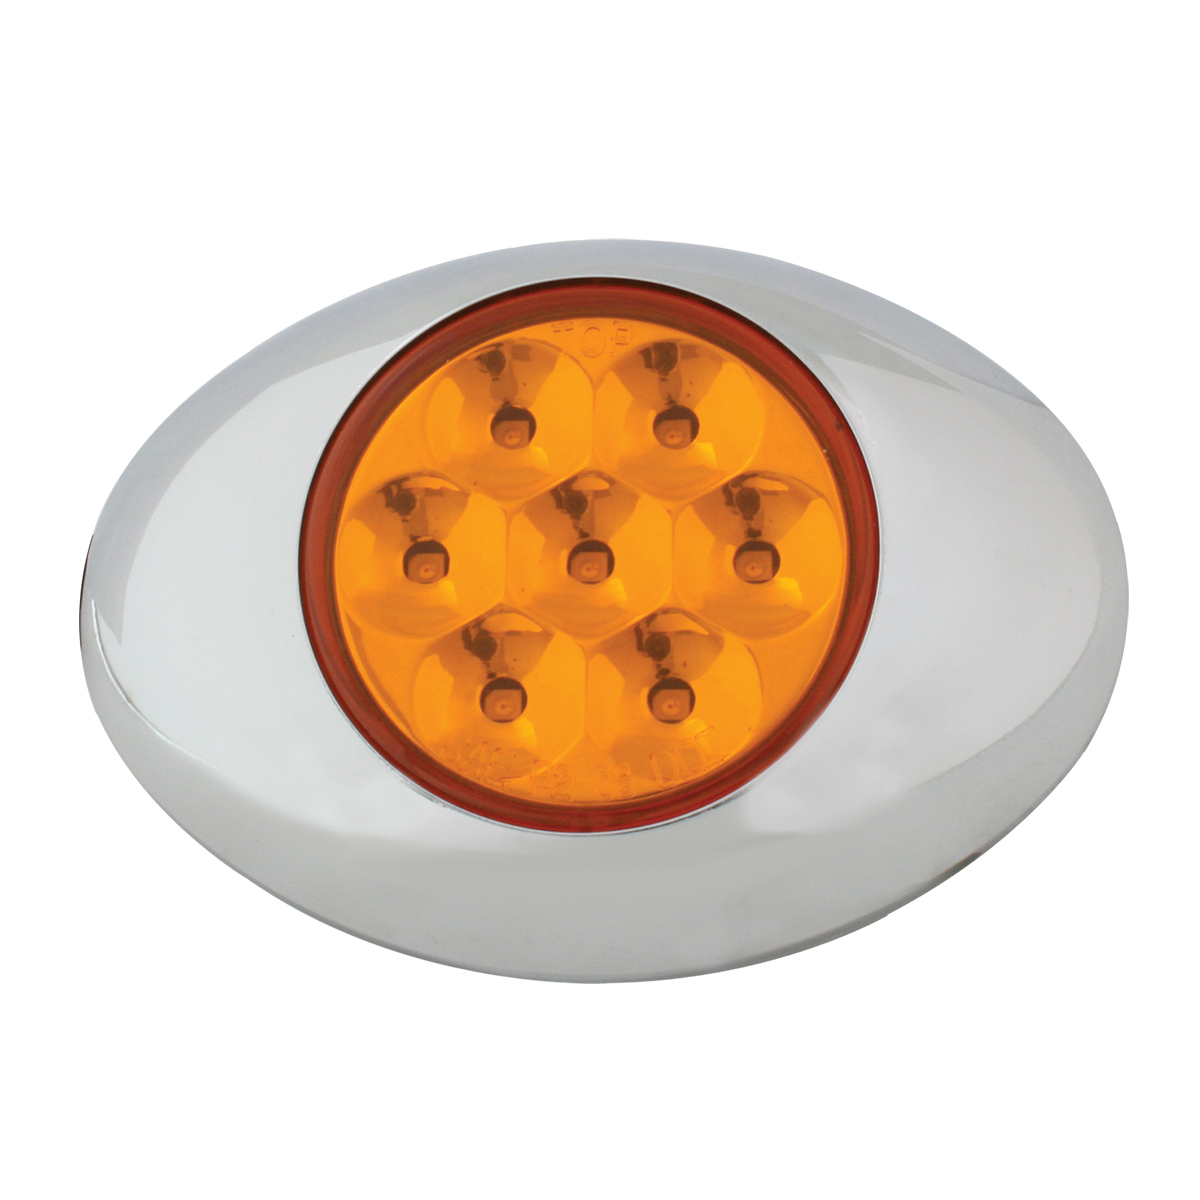 Small Pearl LED Light in Amber/Amber with Chrome Bezel